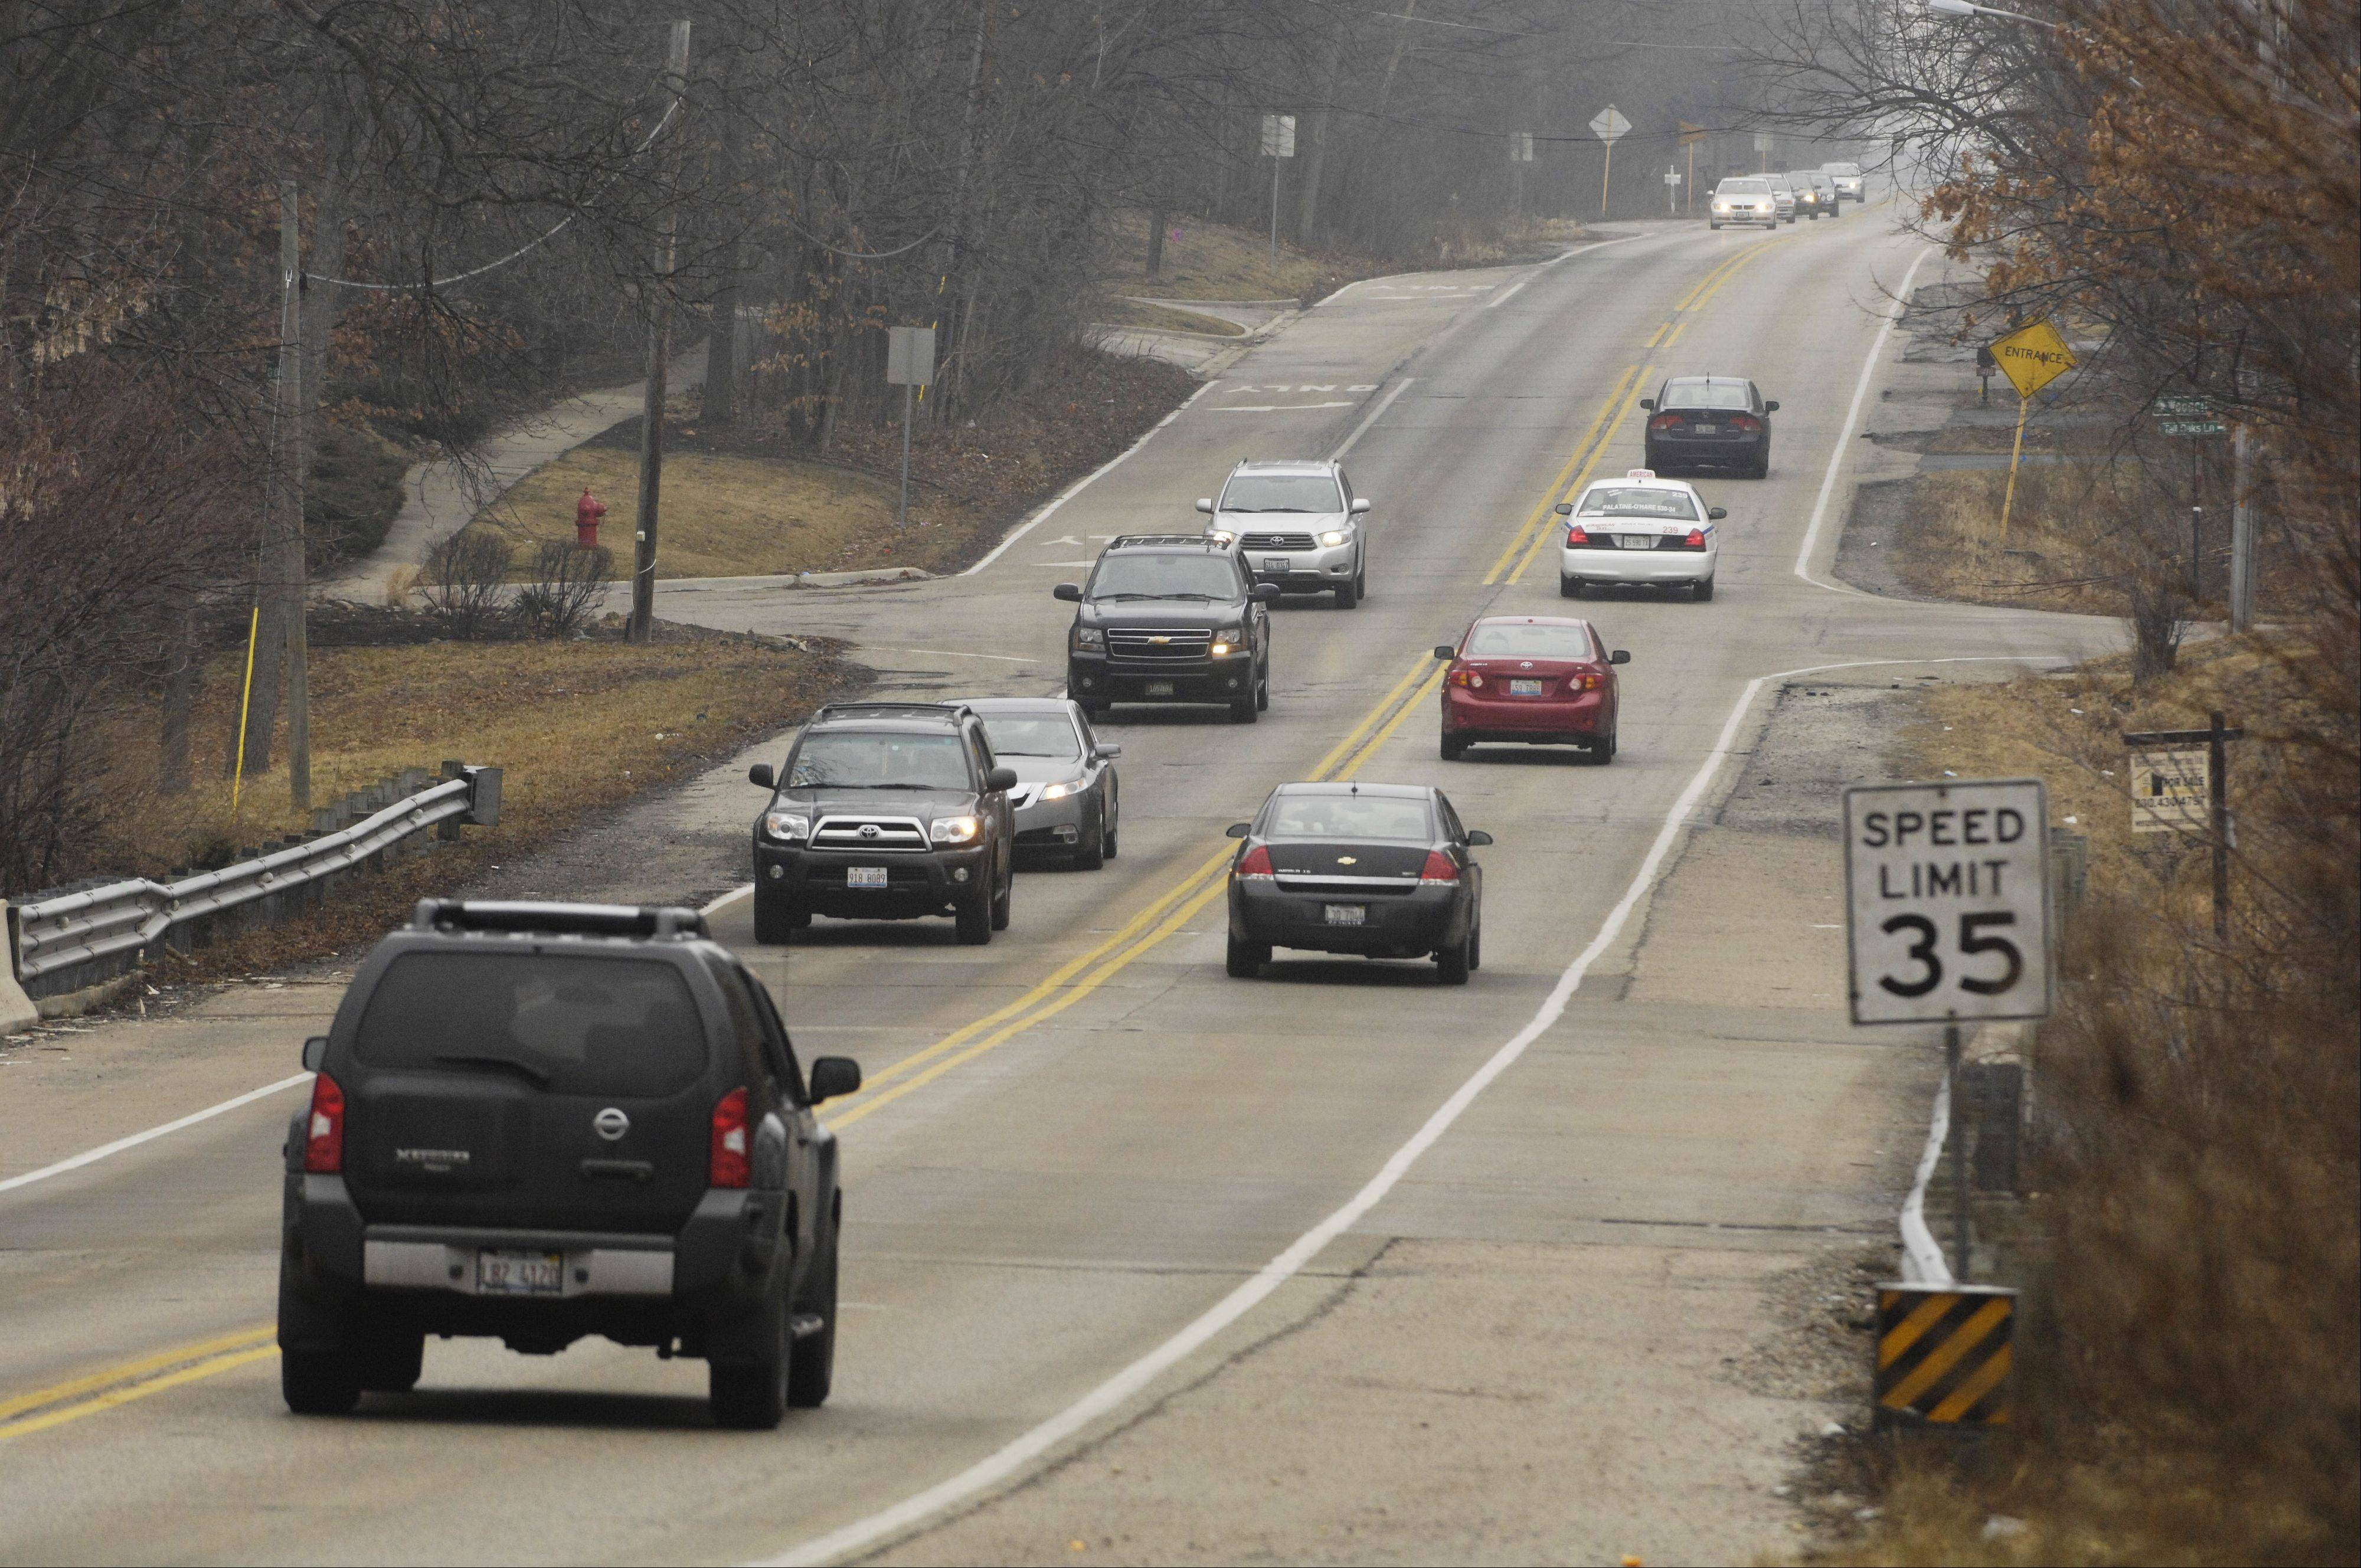 Survey says Meacham Road residents support three lanes, not five